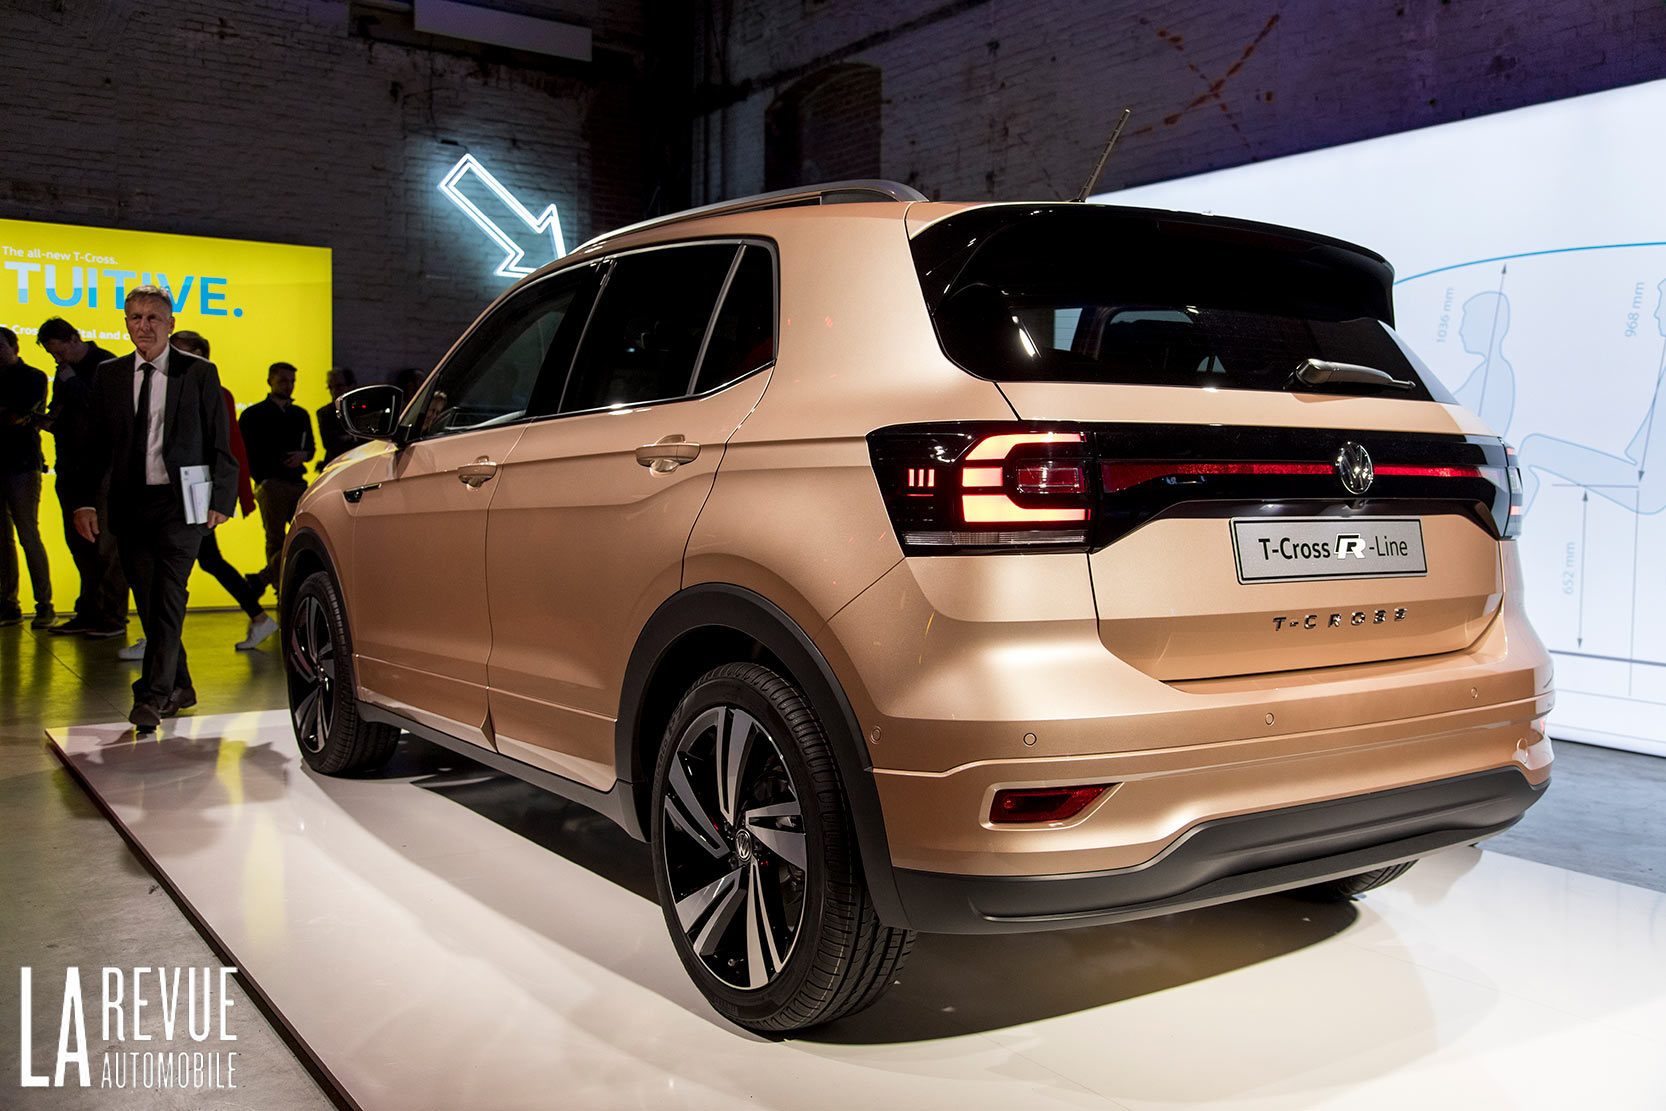 Exterieur_Volkswagen-T-Cross-Reveal_7